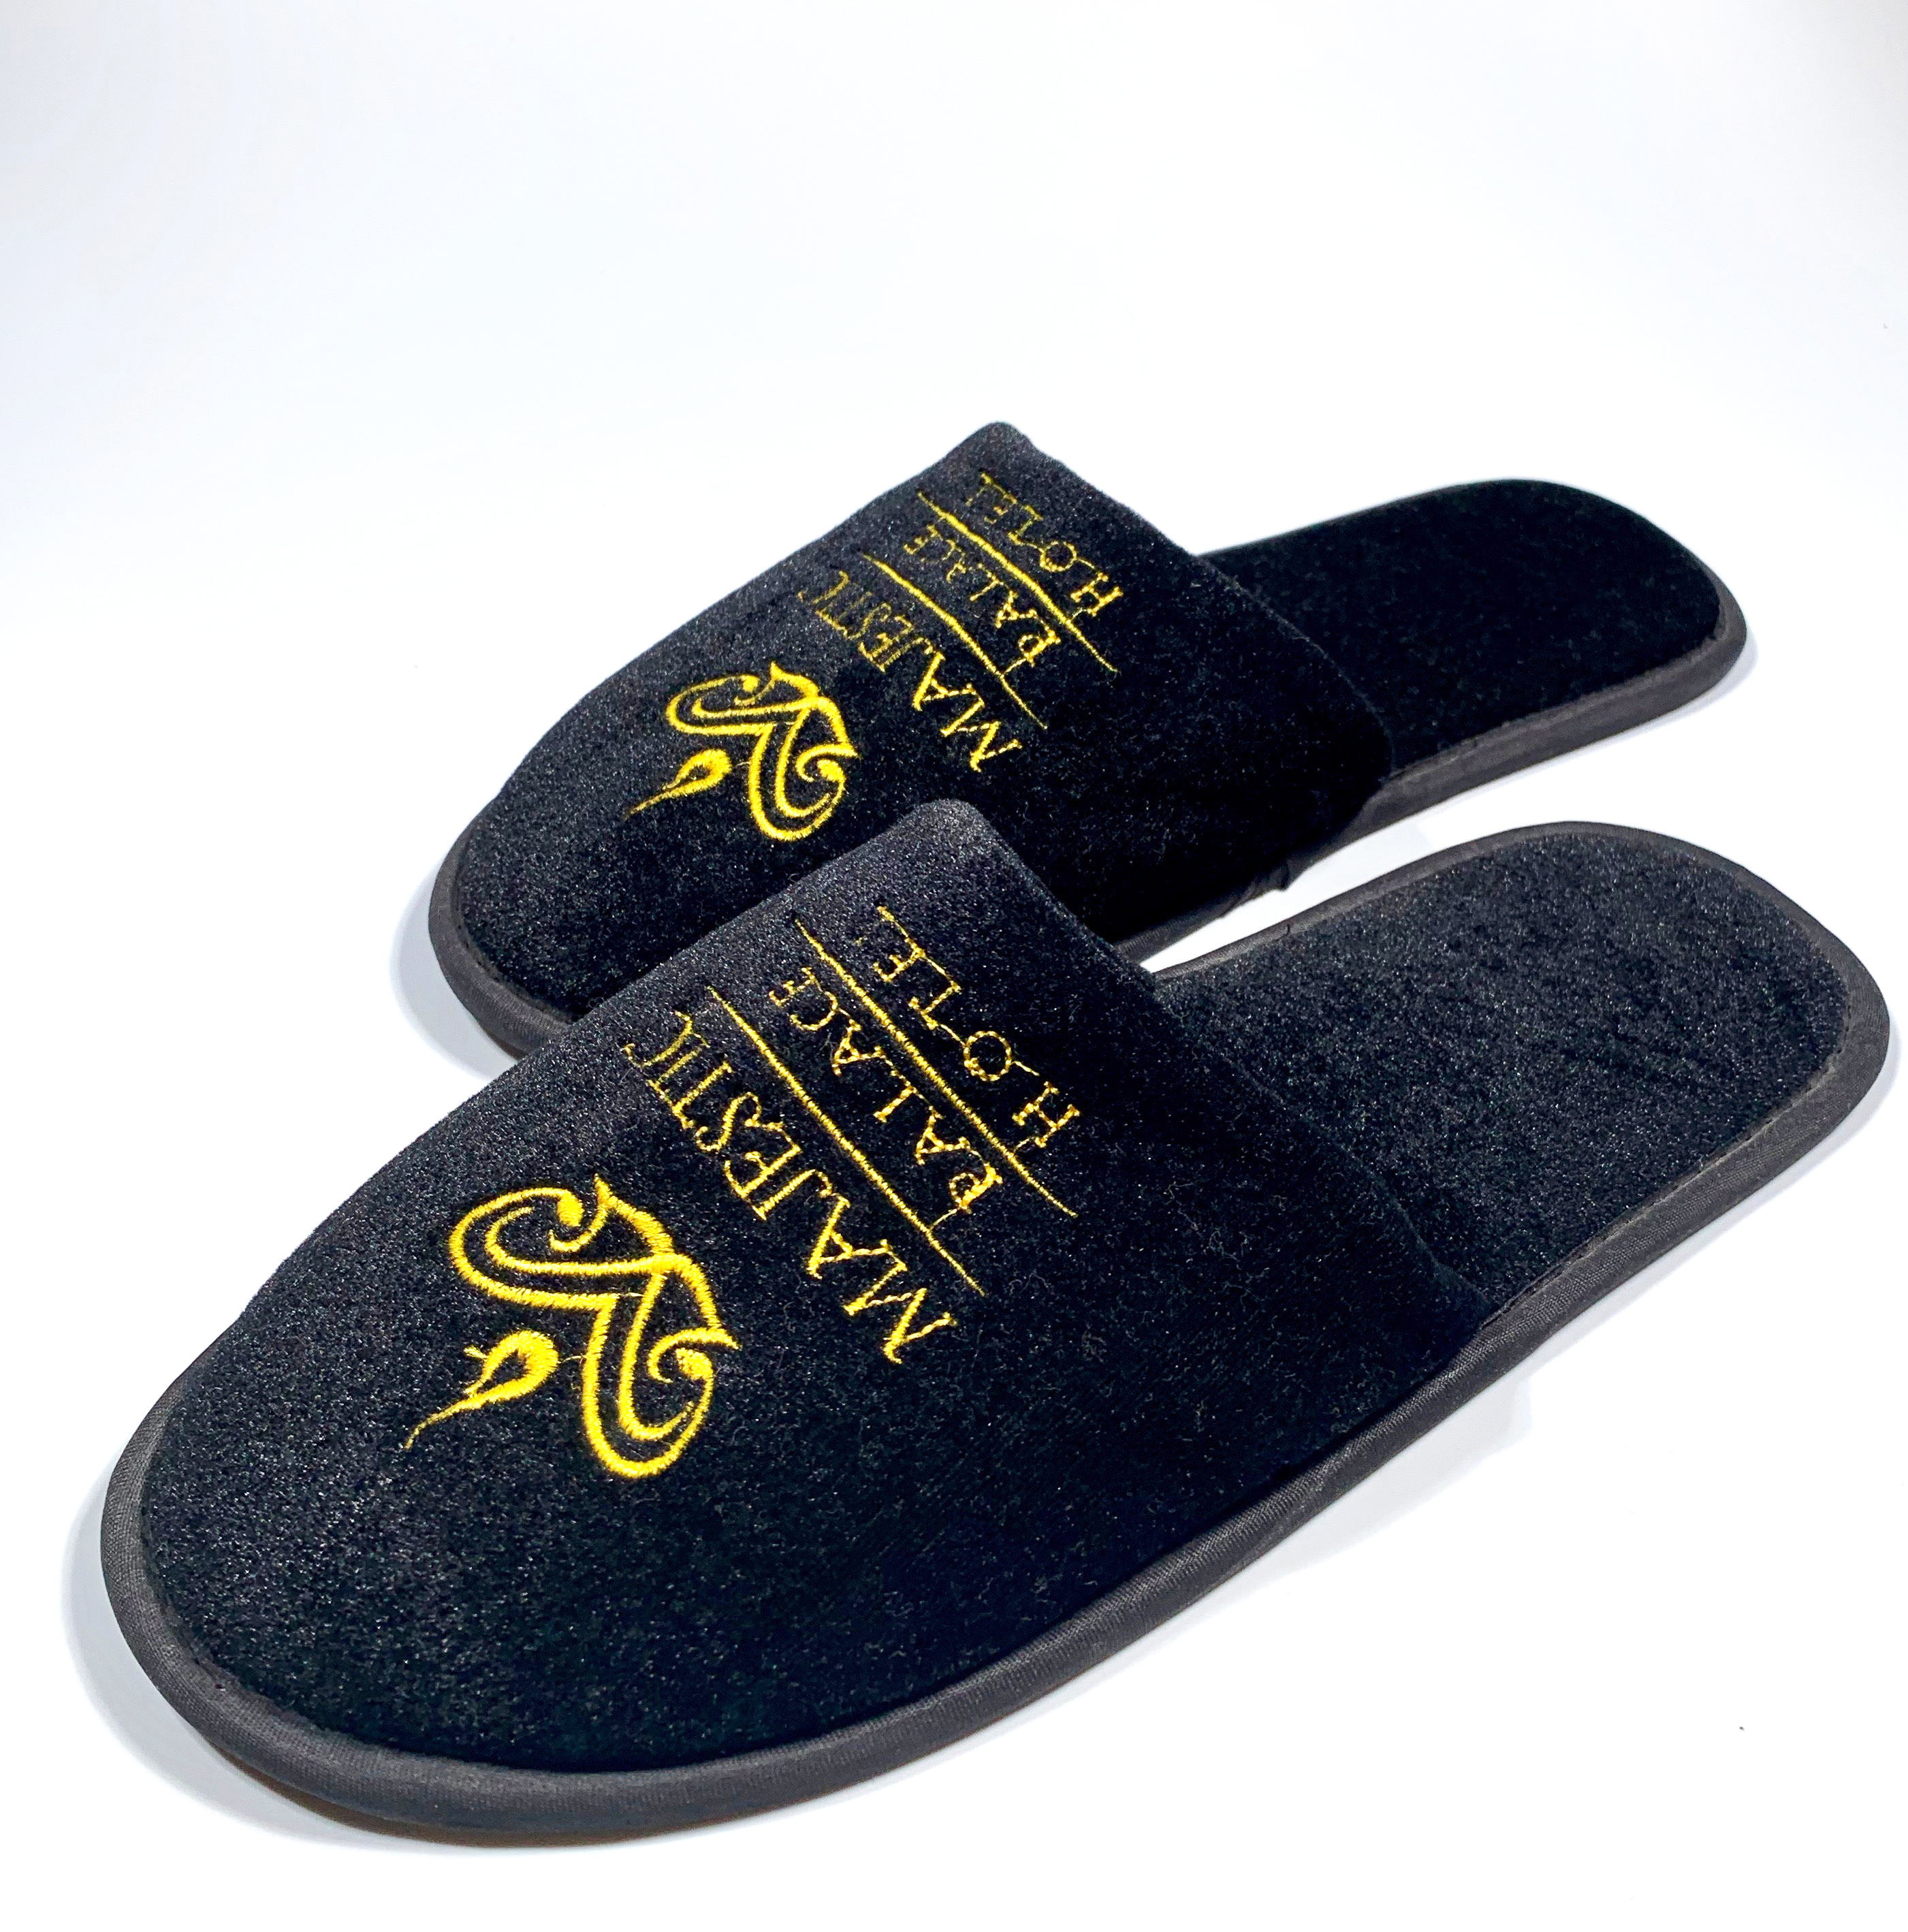 Personalized disposable close toe black hotel room slippers